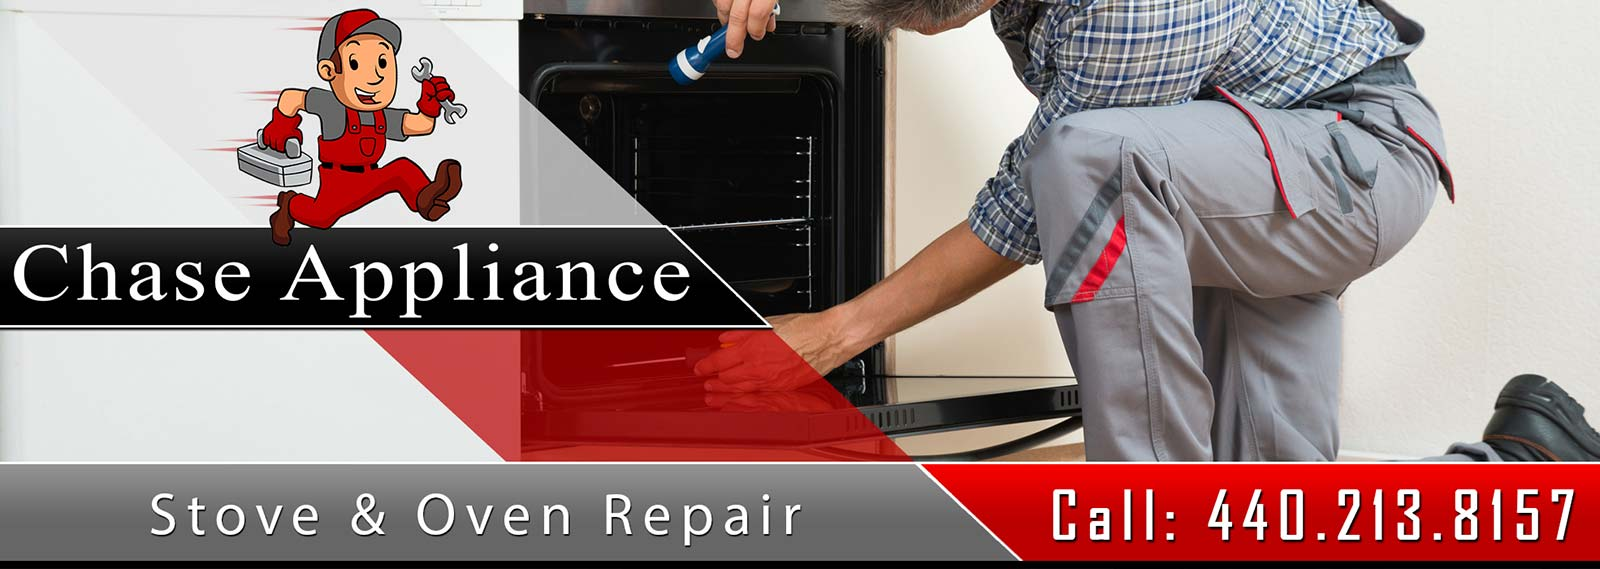 Stove and Oven Appliance Repair and Service